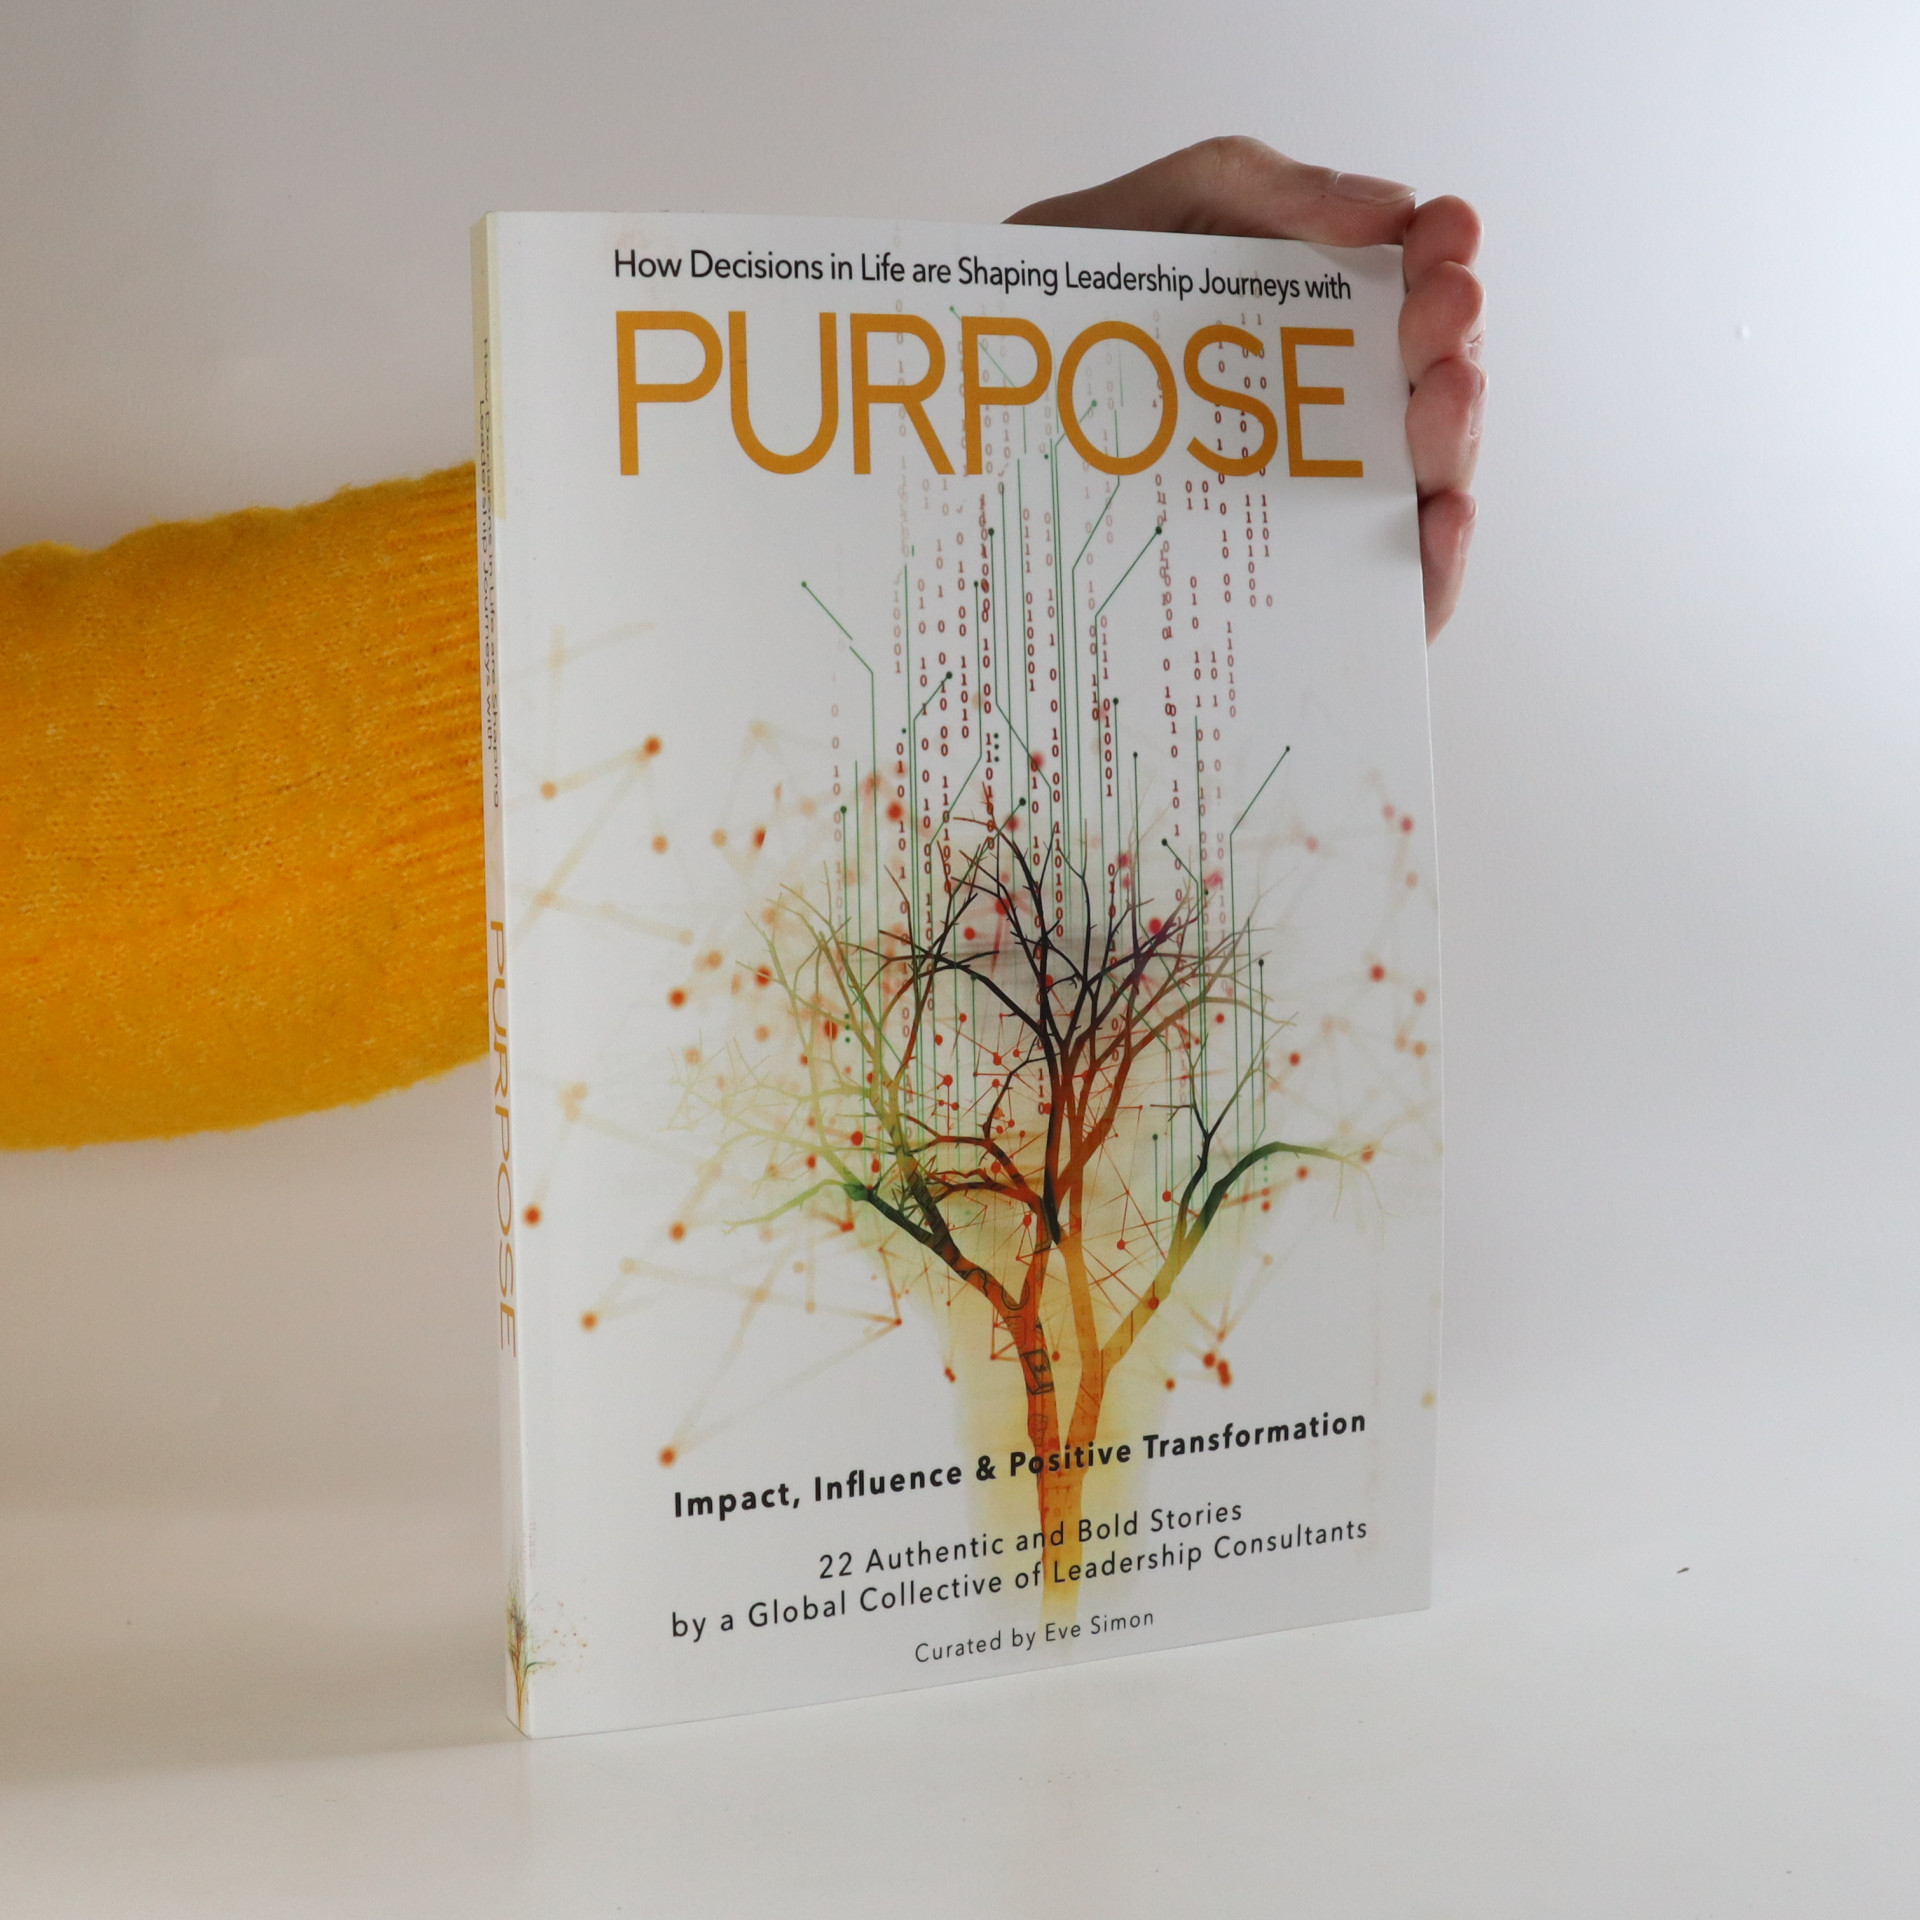 antikvární kniha How Decisions in Life are Shaping Leadership Journeys with Purpose, neuveden